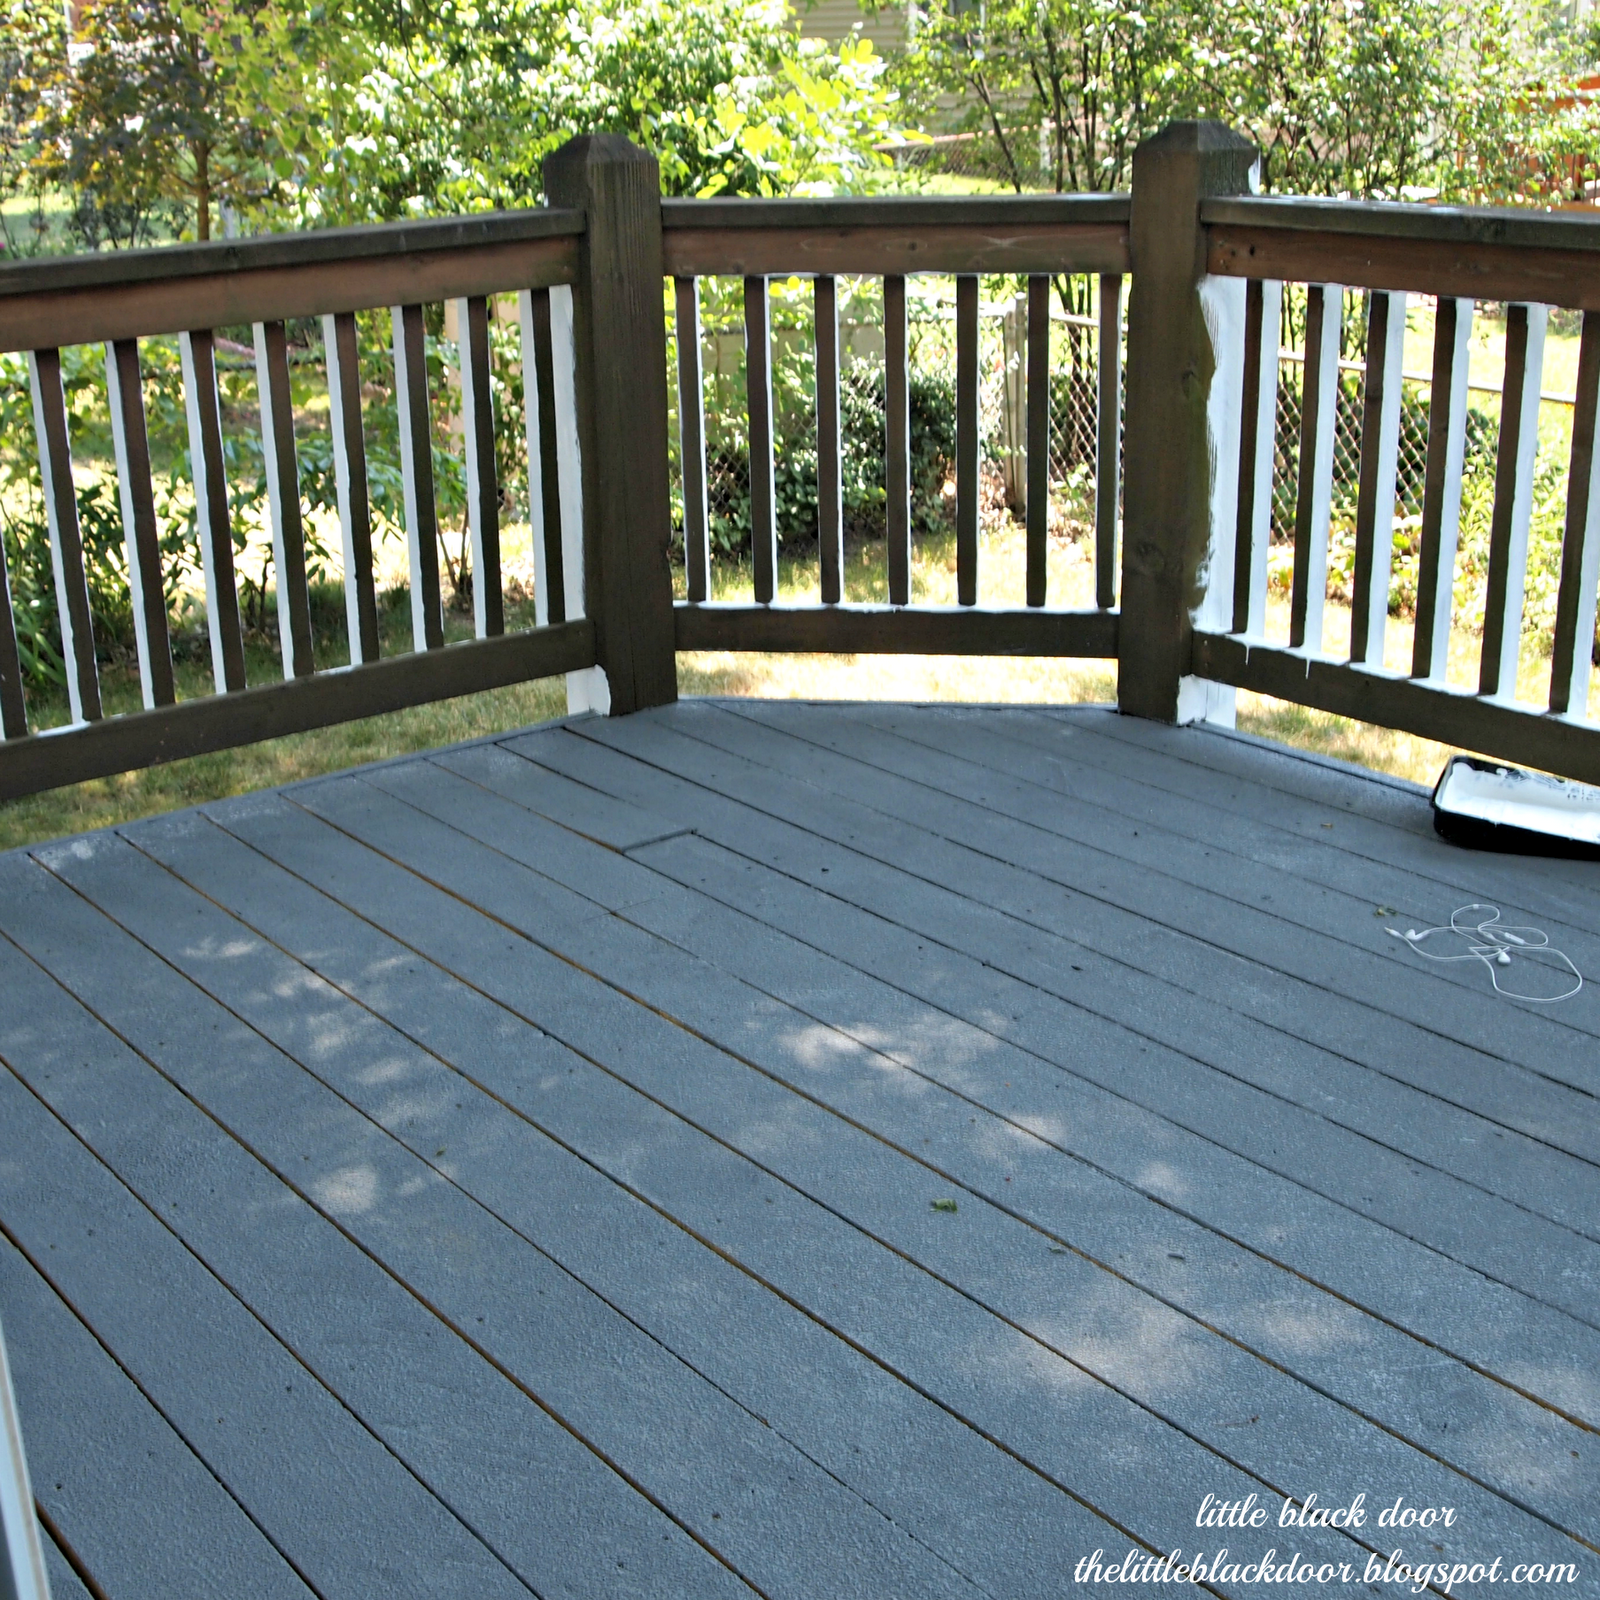 Decks cabot exterior stain cabot stain lowes cabot paint for Deck paint colors home depot